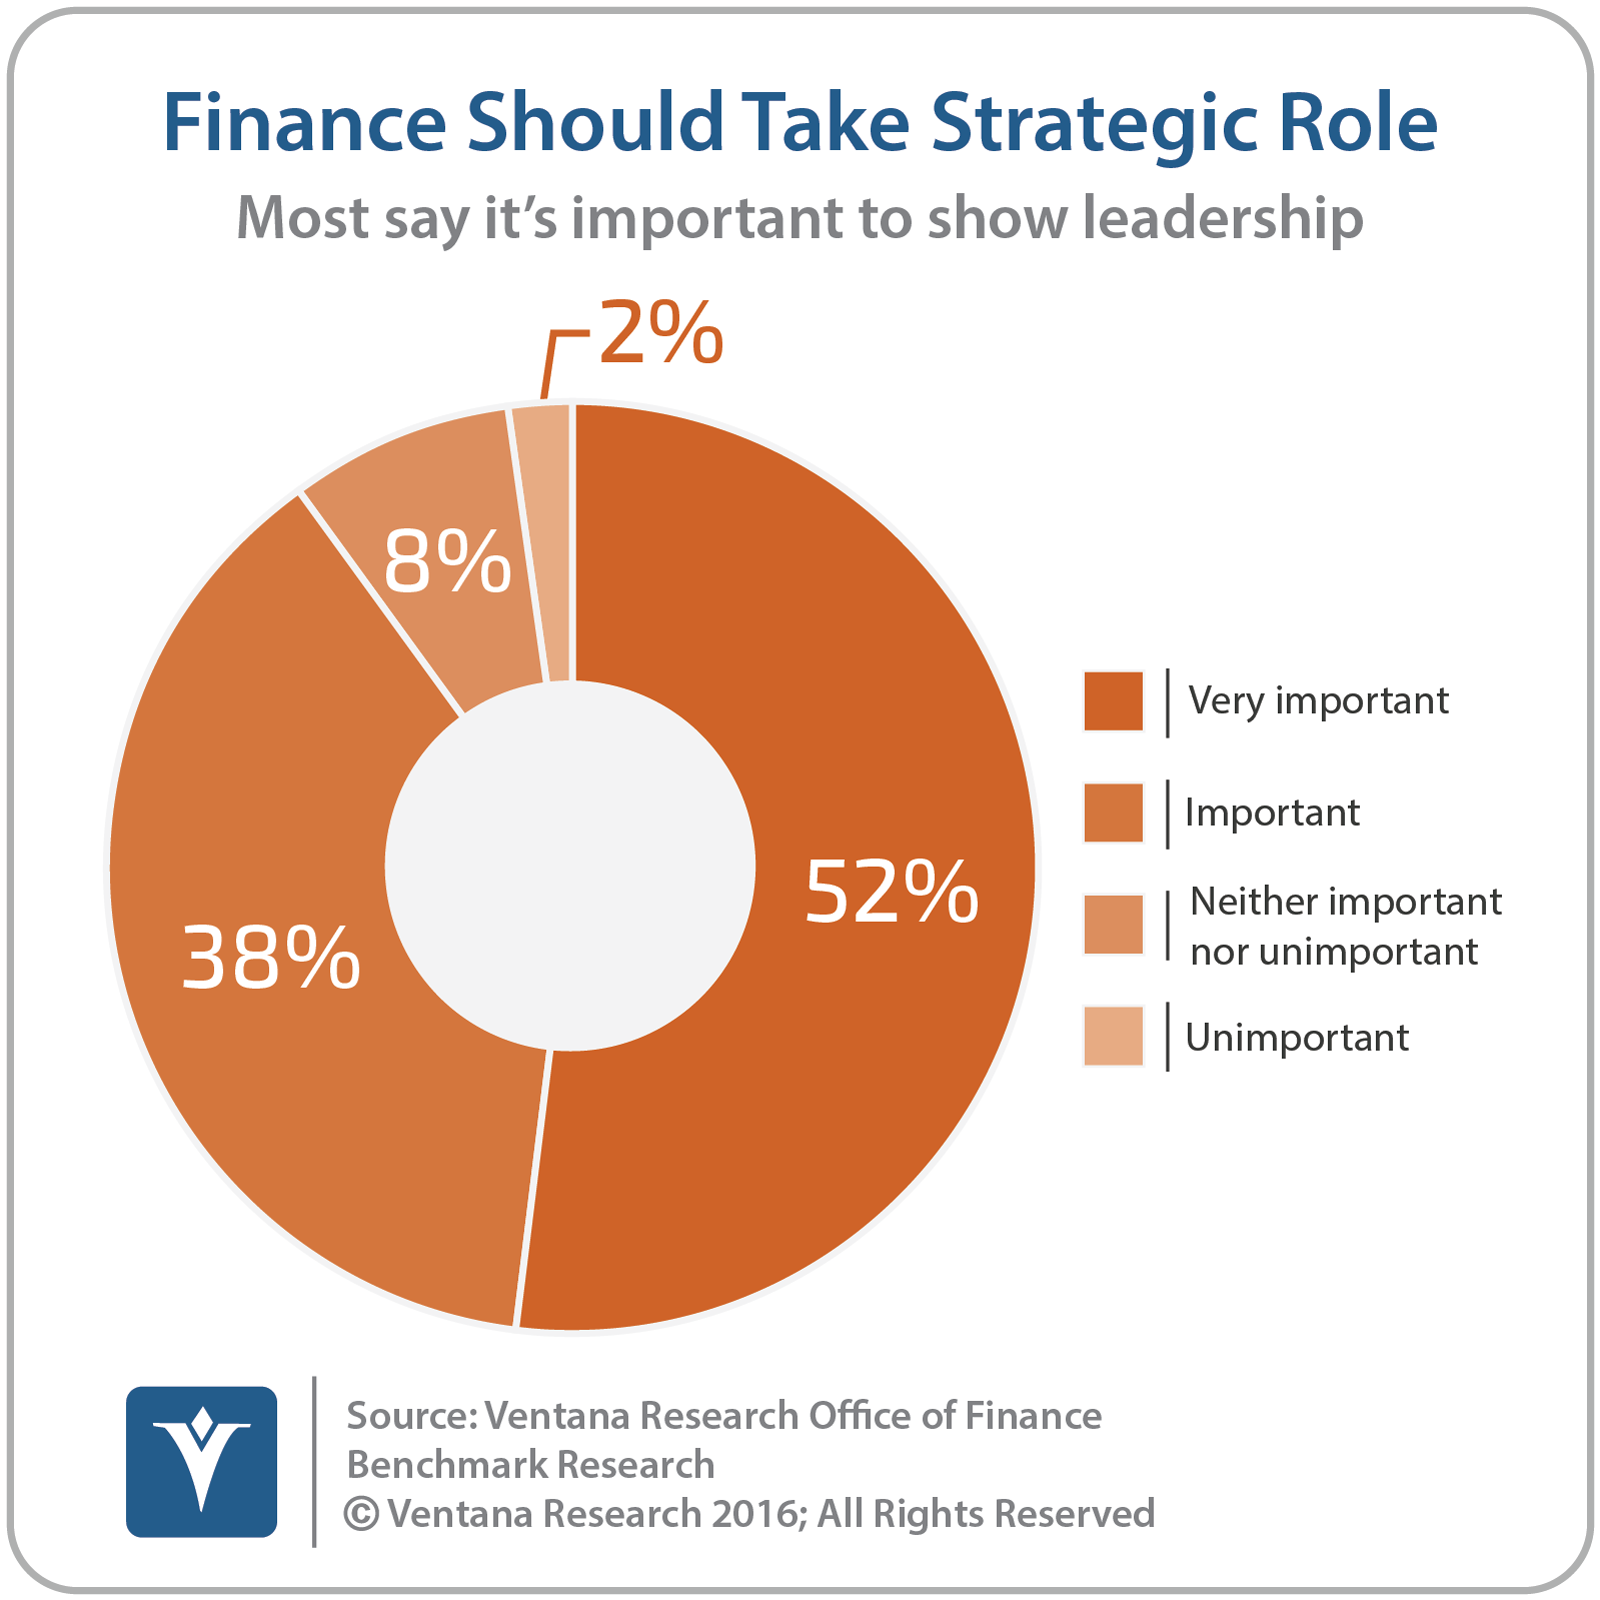 vr_Office_of_Finance_05_finance_should_take_strategic_role_updated3.png